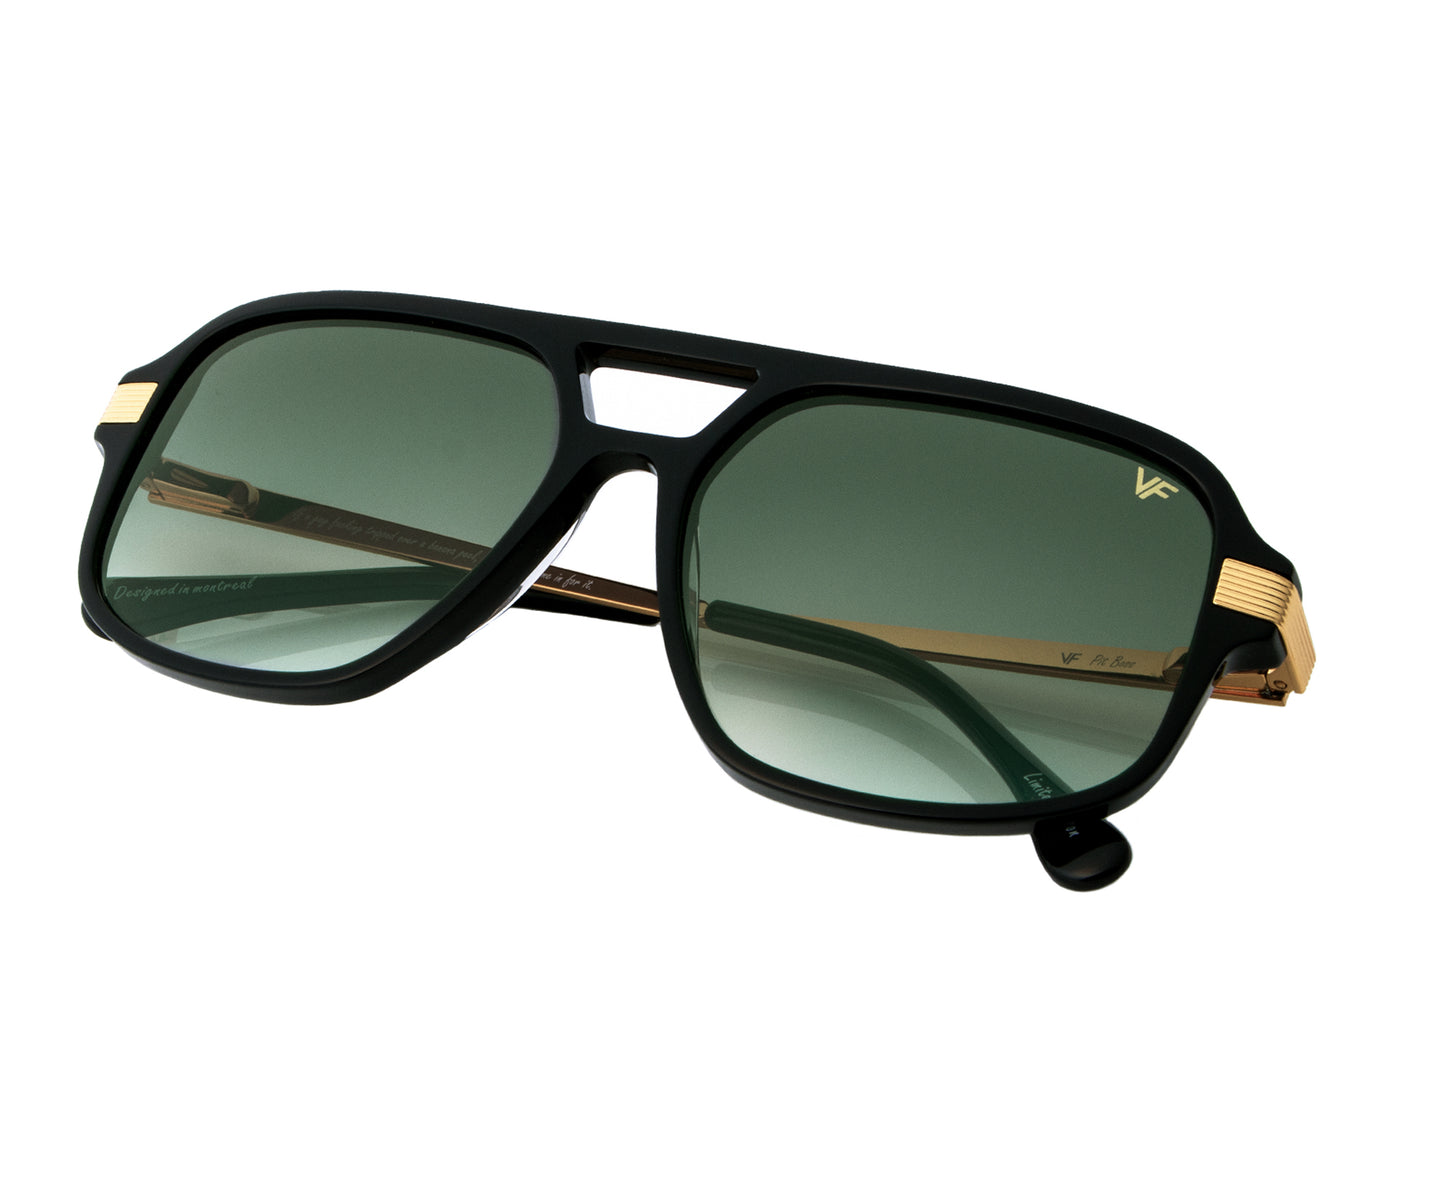 VF Pit Boss Black (Army Green), VF by Vintage Frames , glasses frames, eyeglasses online, eyeglass frames, mens glasses, womens glasses, buy glasses online, designer eyeglasses, vintage sunglasses, retro sunglasses, vintage glasses, sunglass, eyeglass, glasses, lens, vintage frames company, vf